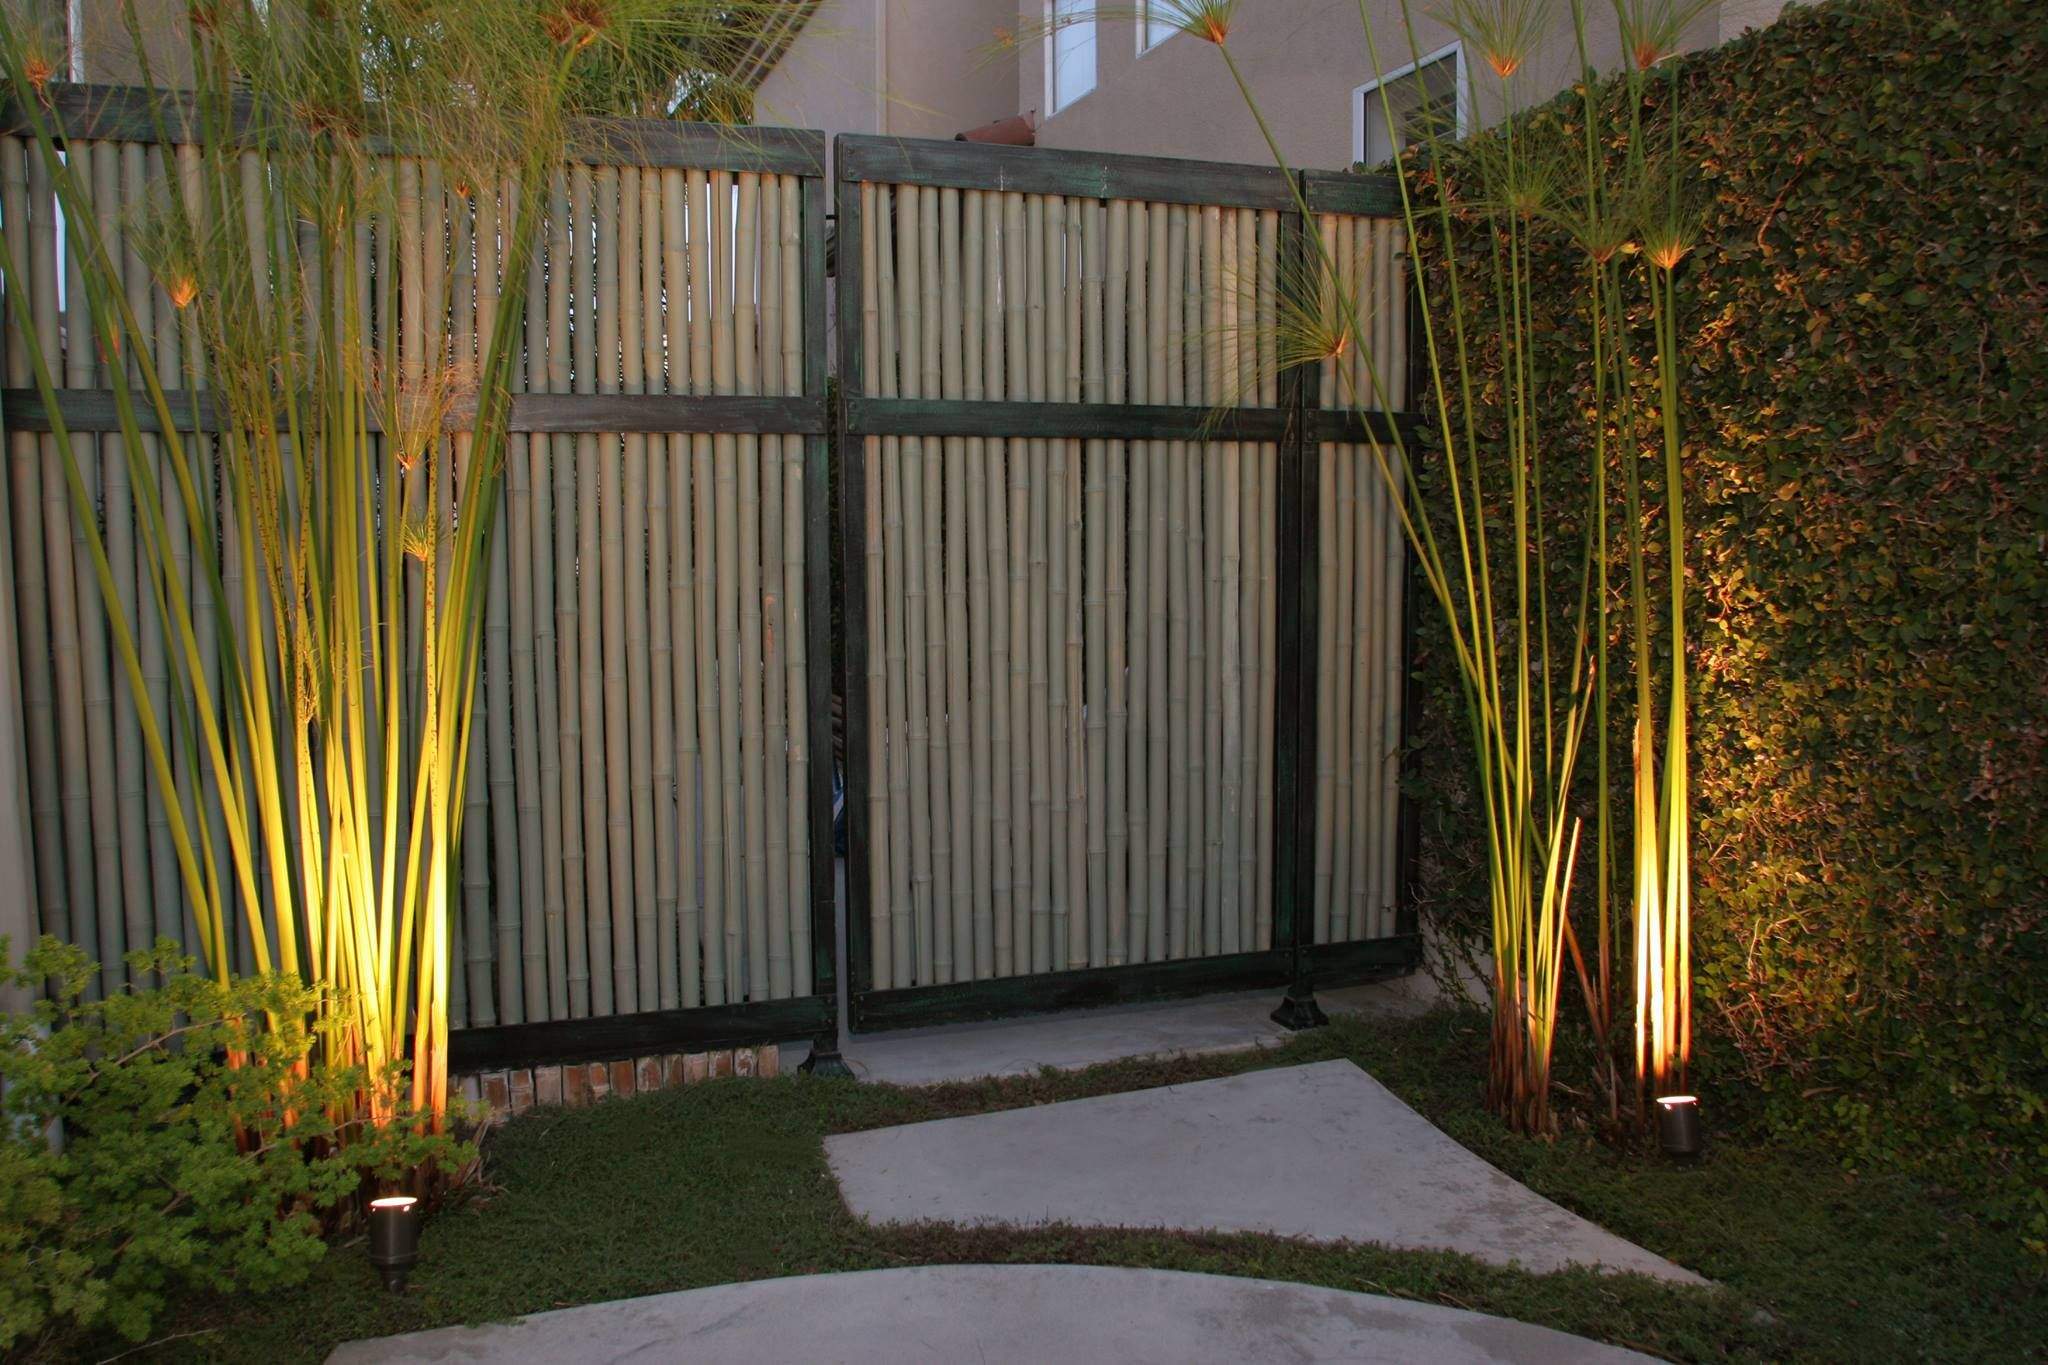 Solena Landscape Asian Contemporary Gate Detail With Bamboo